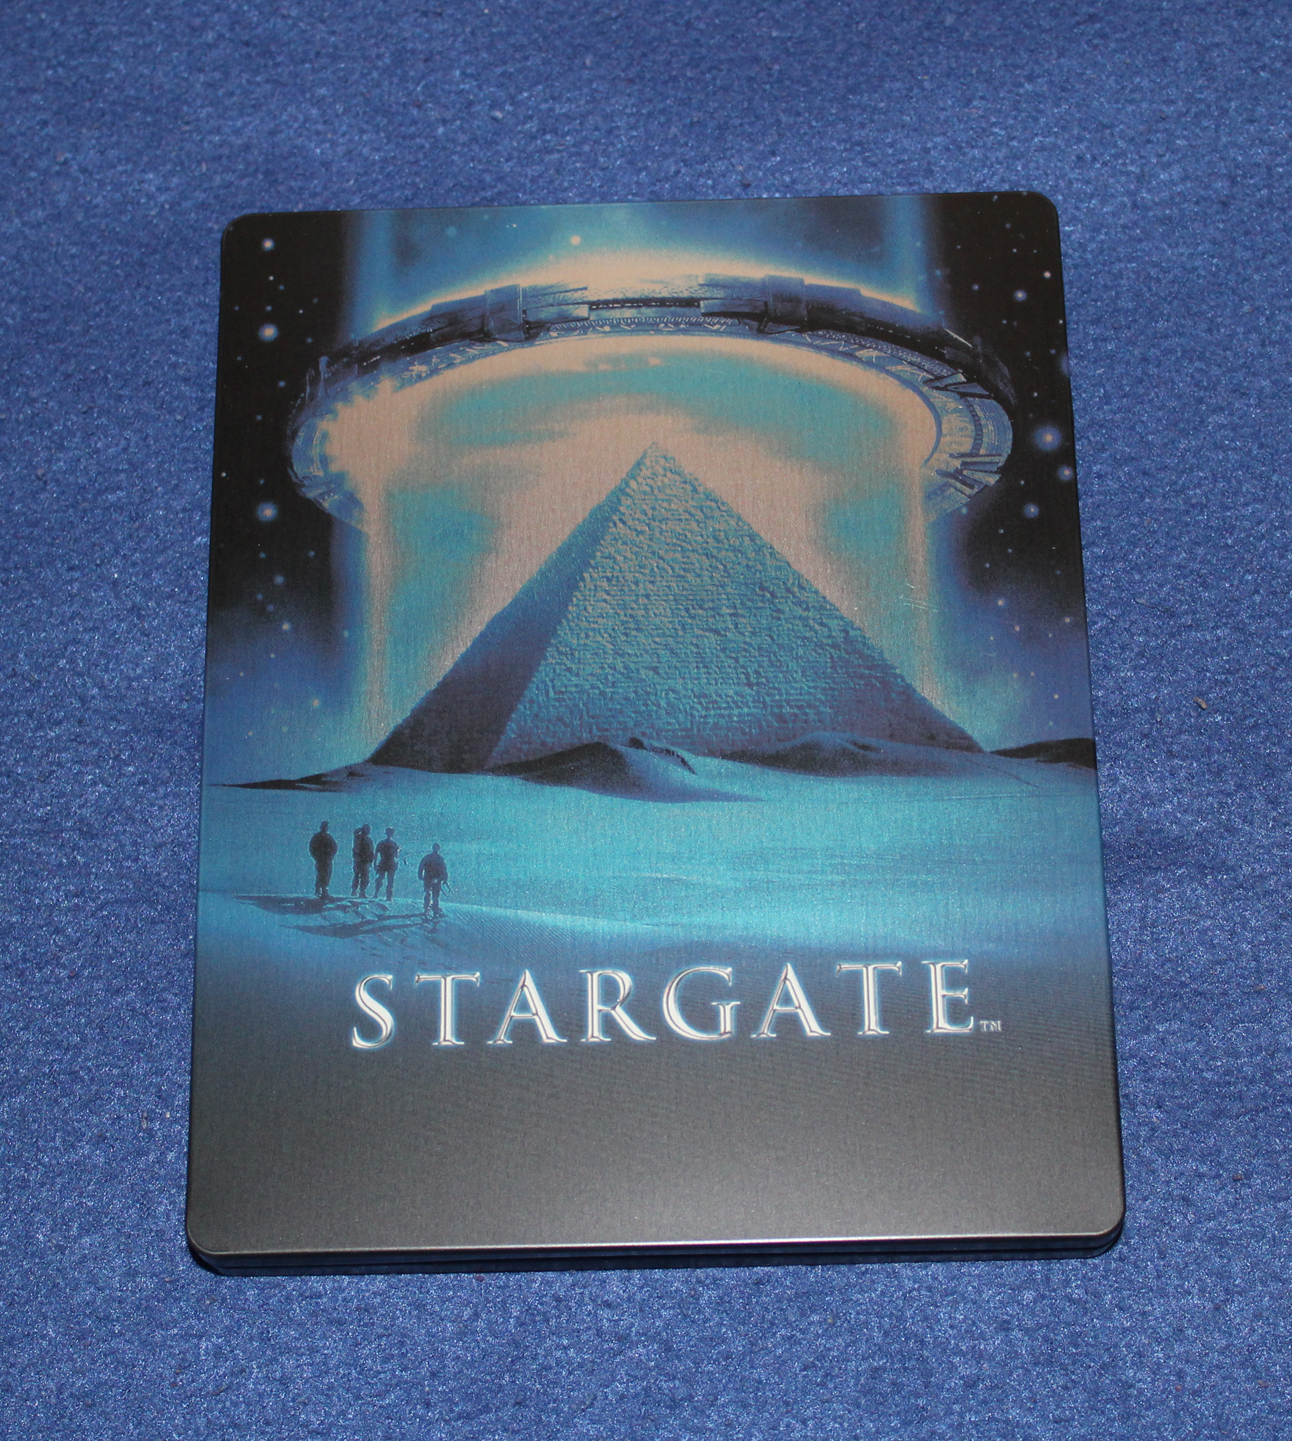 Stargate 20th Anniversary Edition - Exclusive Limited Edition Steelbook - 004